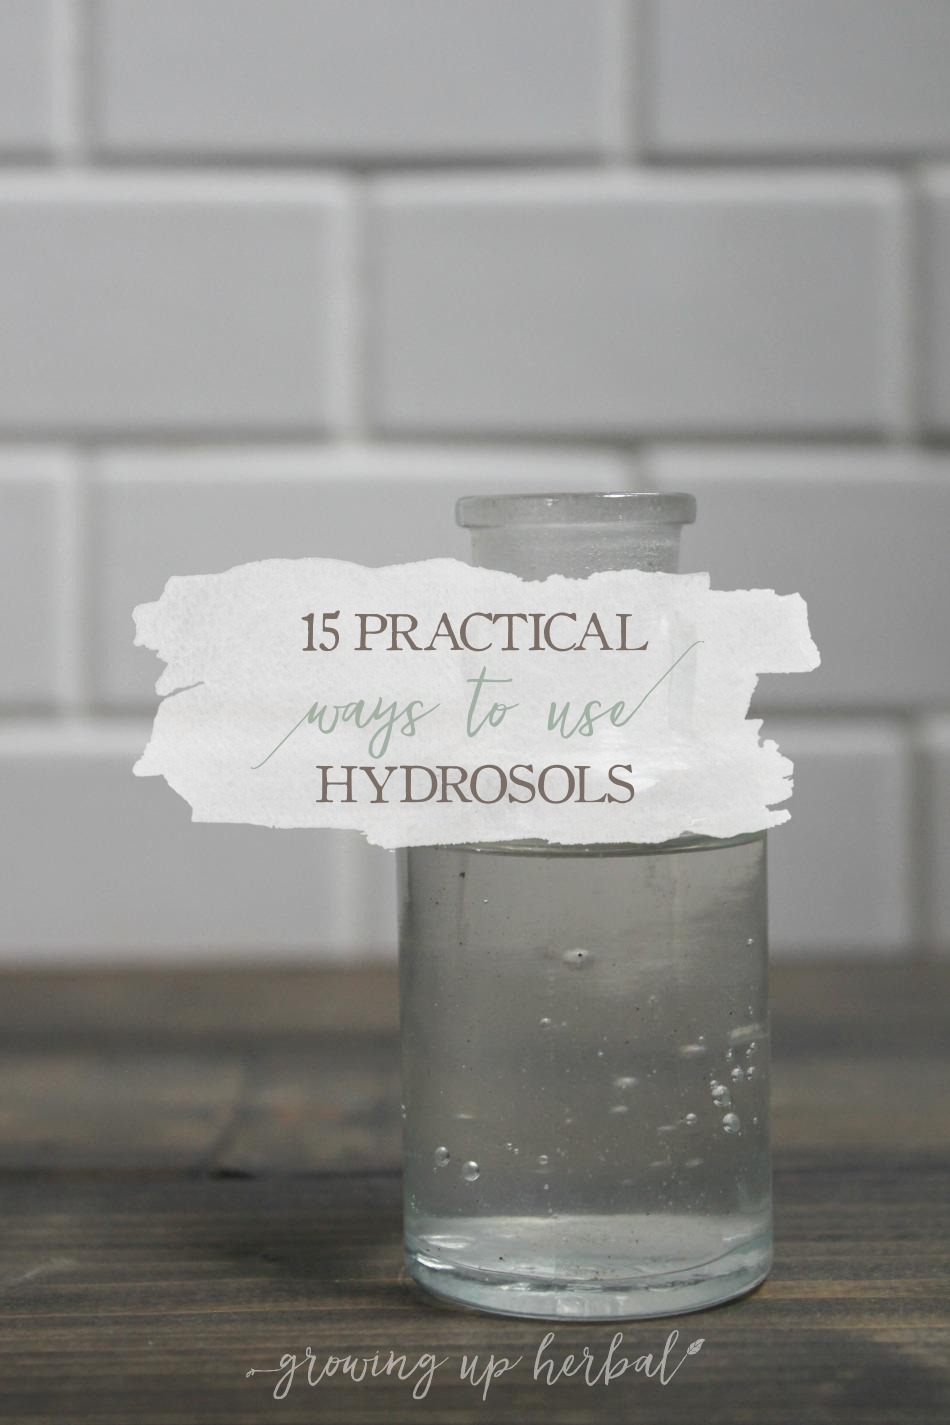 15 Practical Ways To Use Hydrosols | Growing Up Herbal | Learn 15 practical uses for hydrosols for your skin, your health, your home, your food, and more!